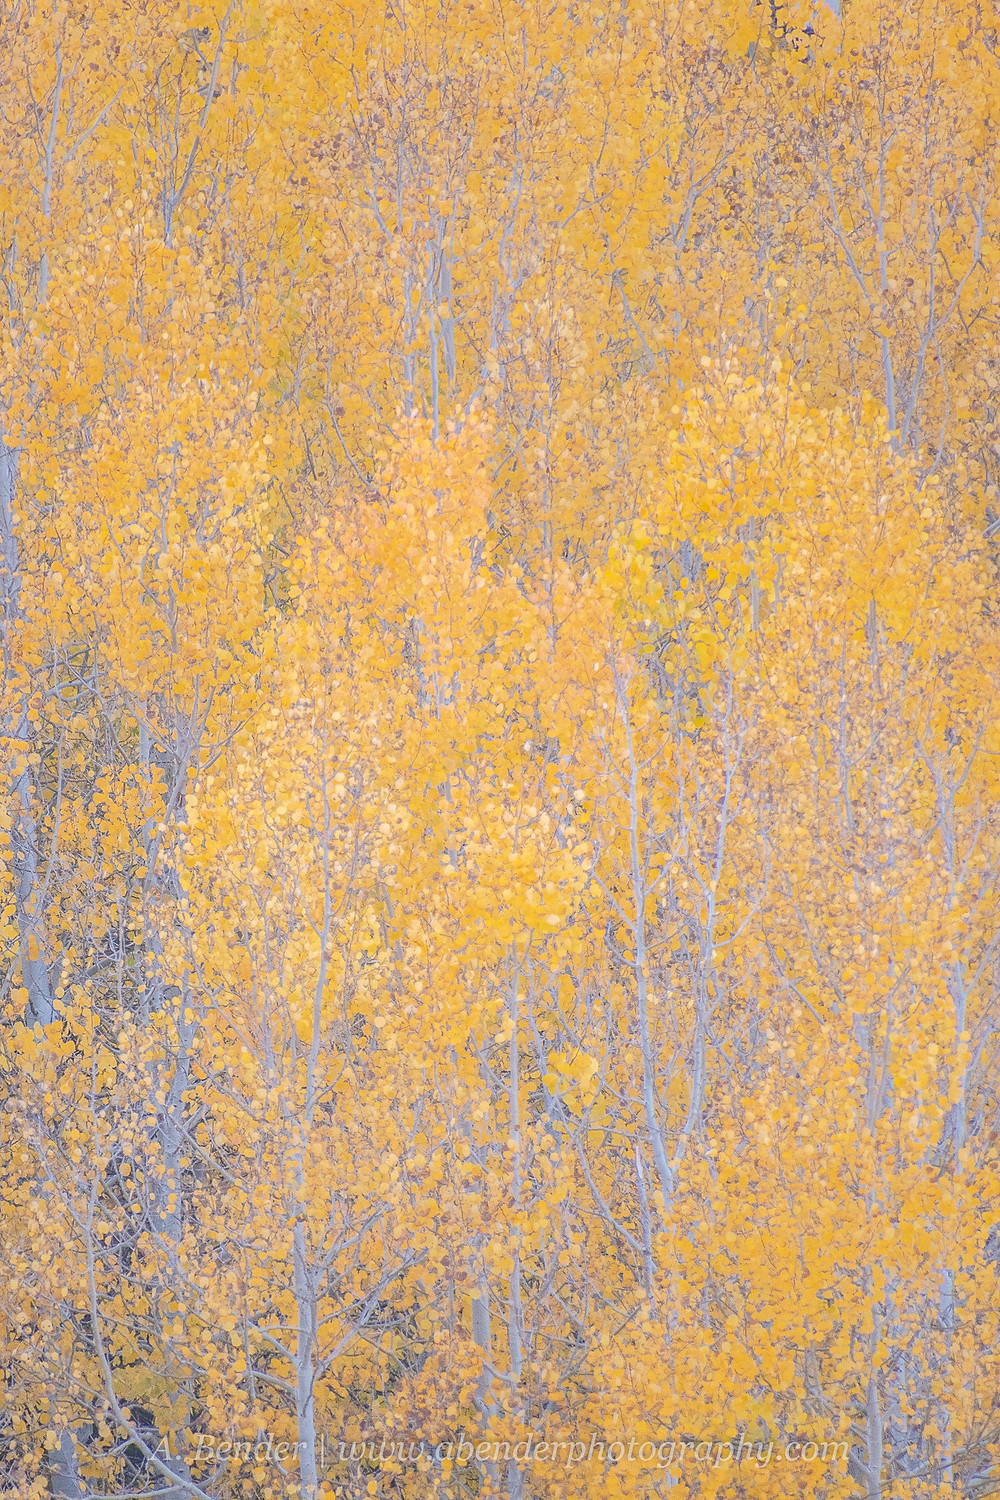 Layers of aspen branches with yellow leaves create an abstract image of color and texture in the Wasatch Mountains Utah 2021 autumn fall foliage | A Bender Photography LLC